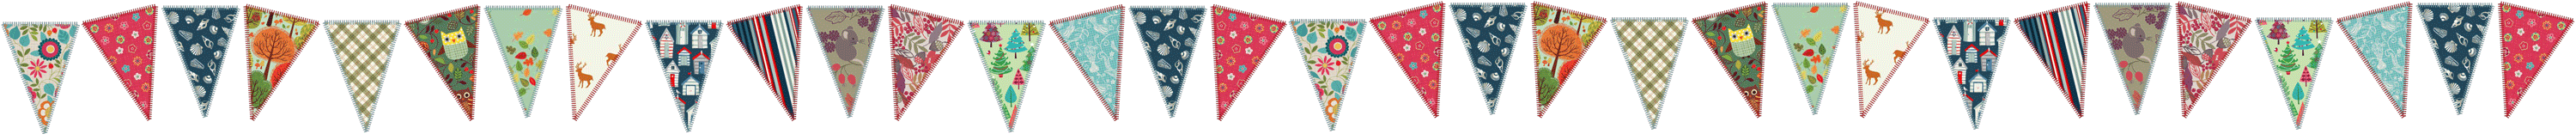 Sewing in Torbay, Fabric in Torbay, Crafts in Torbay 1